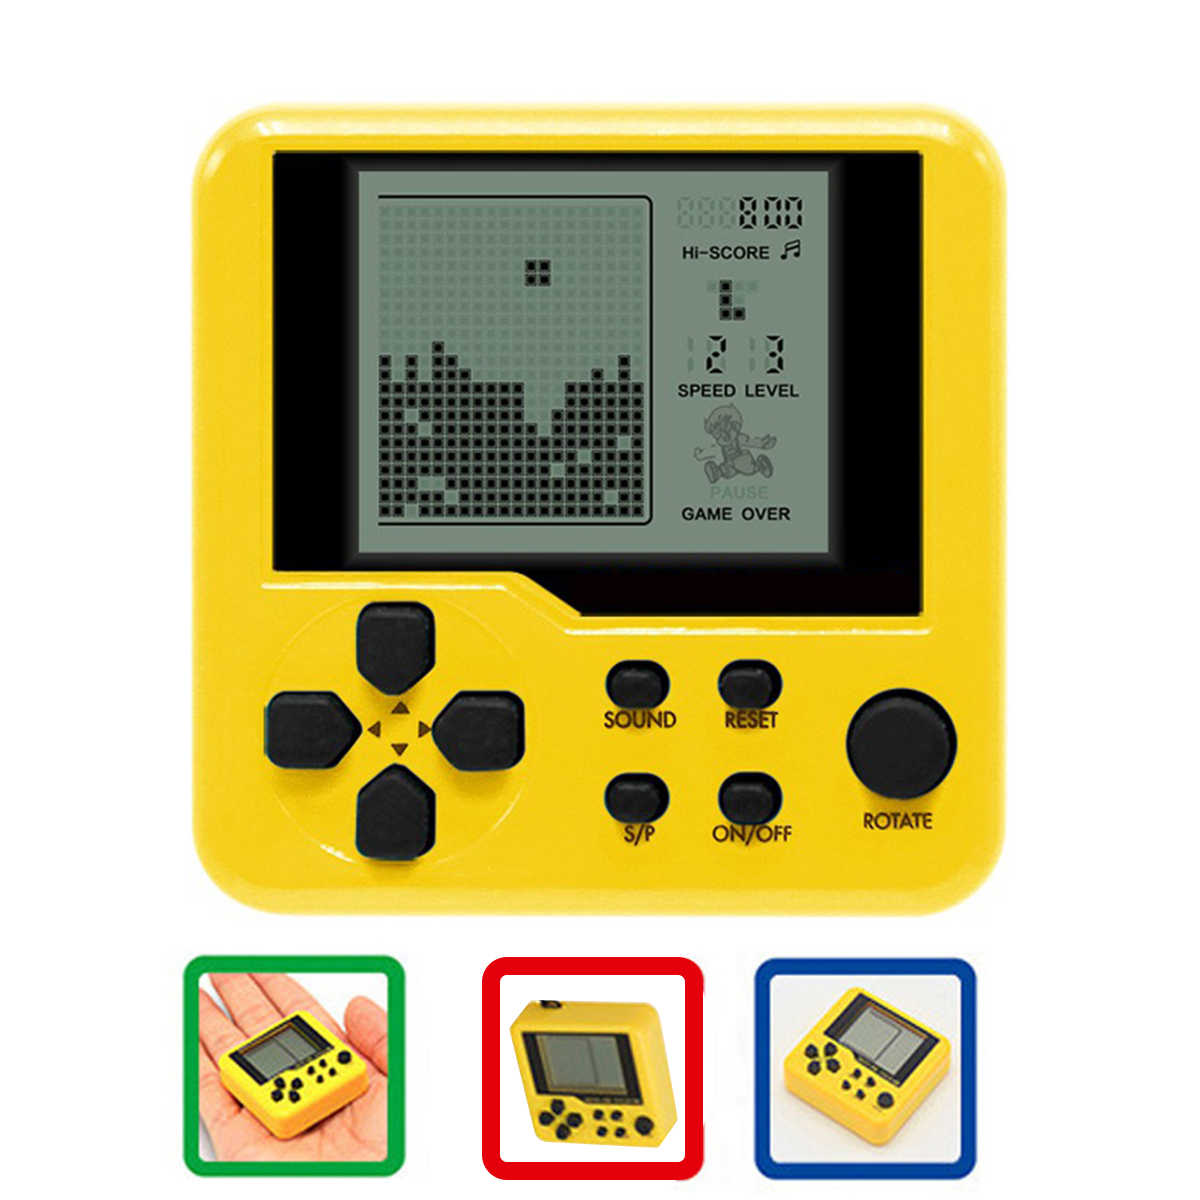 Retro Classic Tetris Handheld Game Player Portable Mini Childhood Games Console Puzzle Educational Electronic Toy For Kids Child electronics